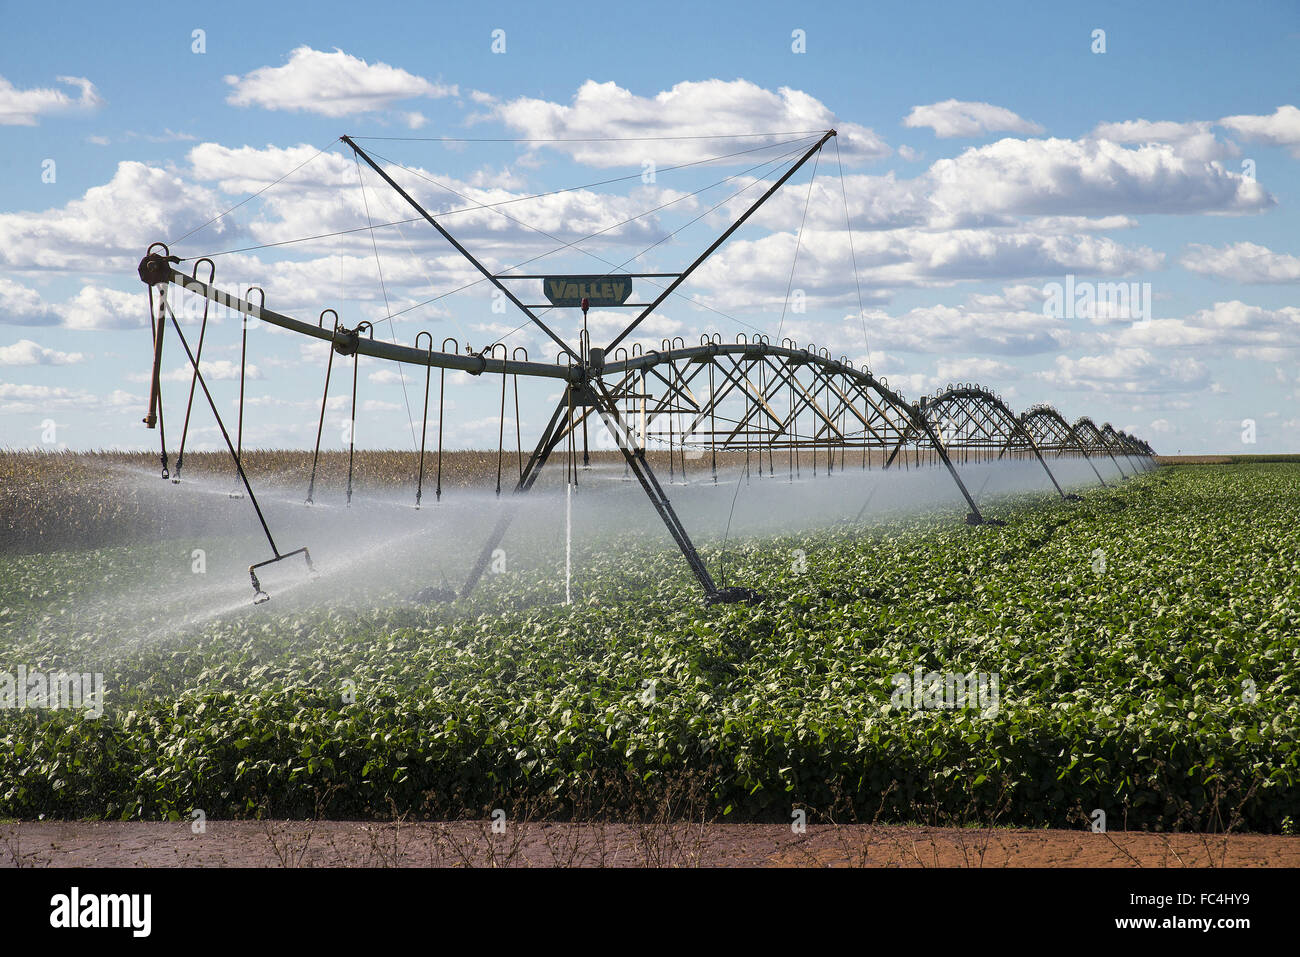 of irrigation with center pivot system for soybean plantation in rural FC4HY9 center pivot irrigation wiring diagrams center pivot valmont Black and White Irrigation Pivot at reclaimingppi.co